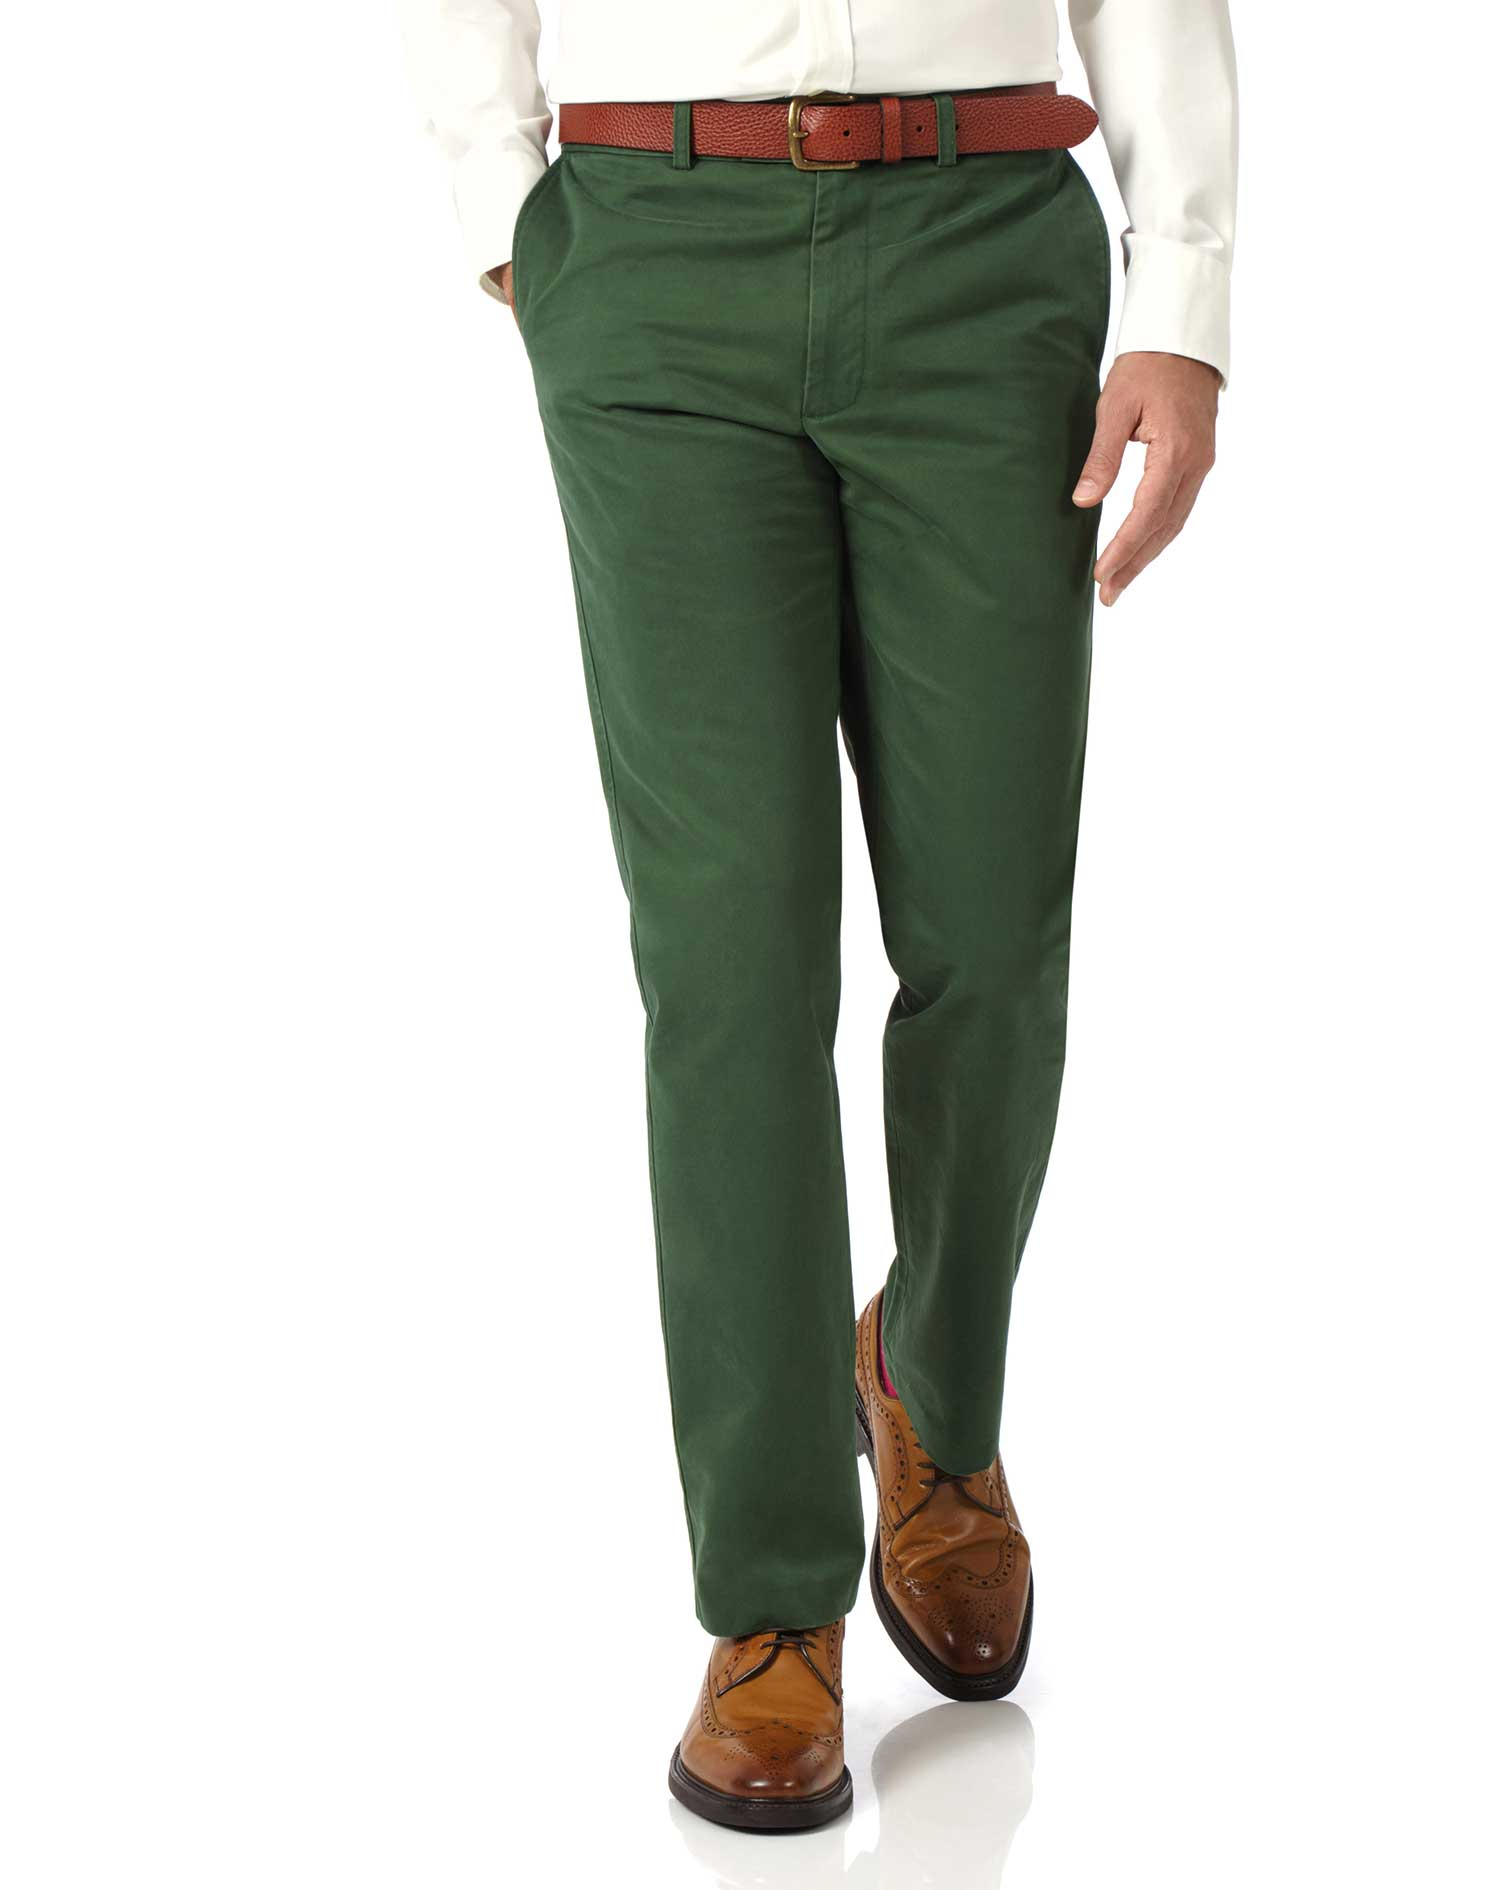 Green Slim Fit Flat Front Washed Cotton Chino Trousers Size W36 L34 by Charles Tyrwhitt